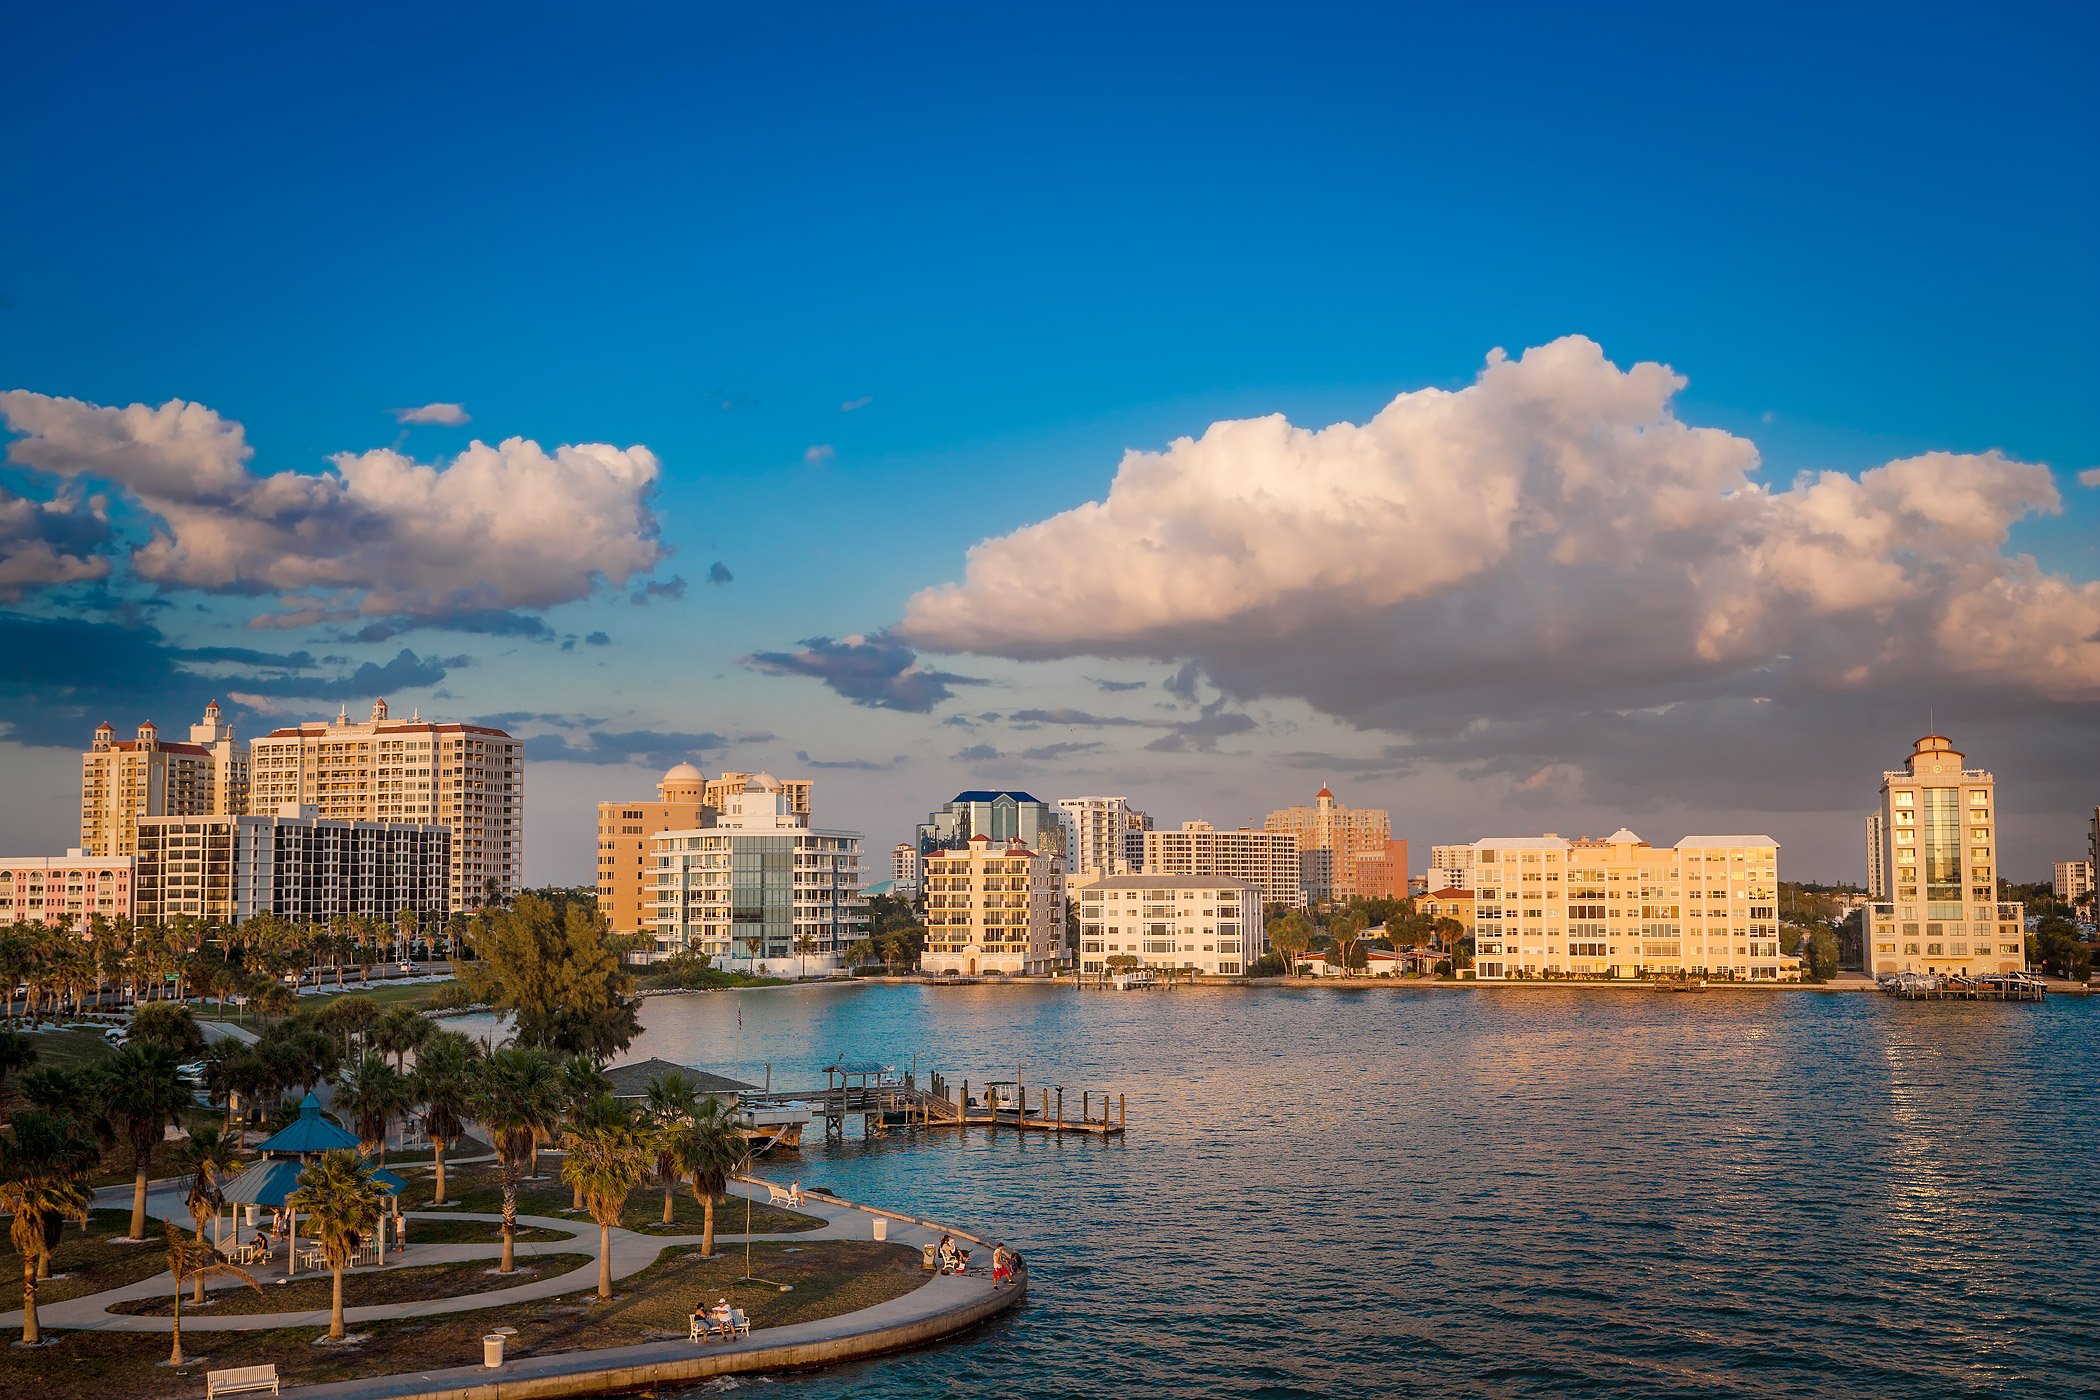 The waterfront in Sarasota, Florida